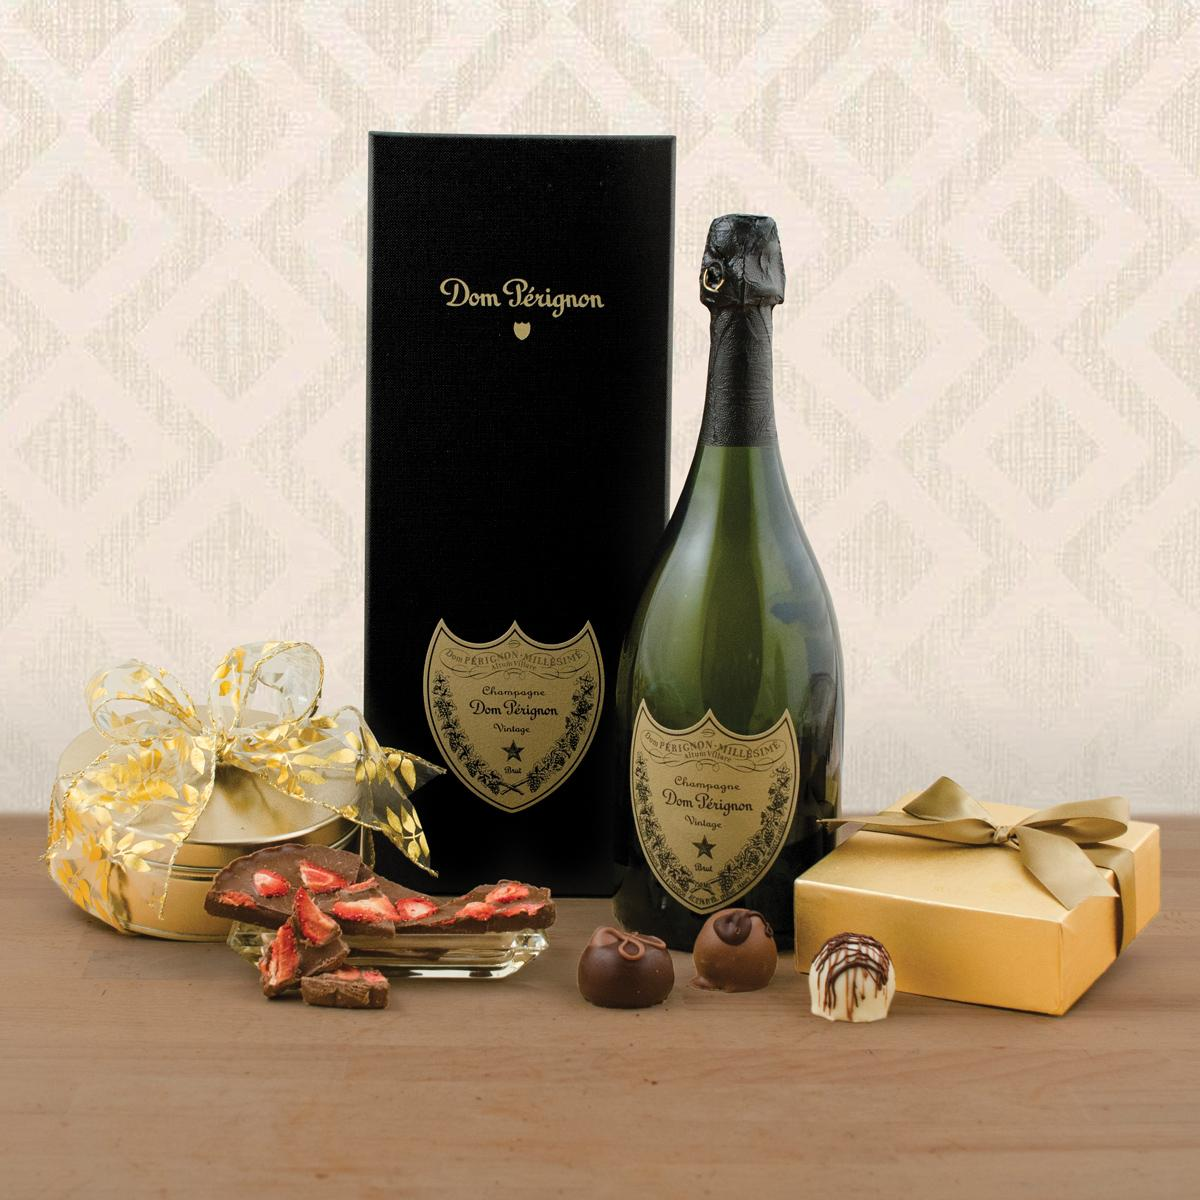 Dom Perignon and Truffles Gift Basket